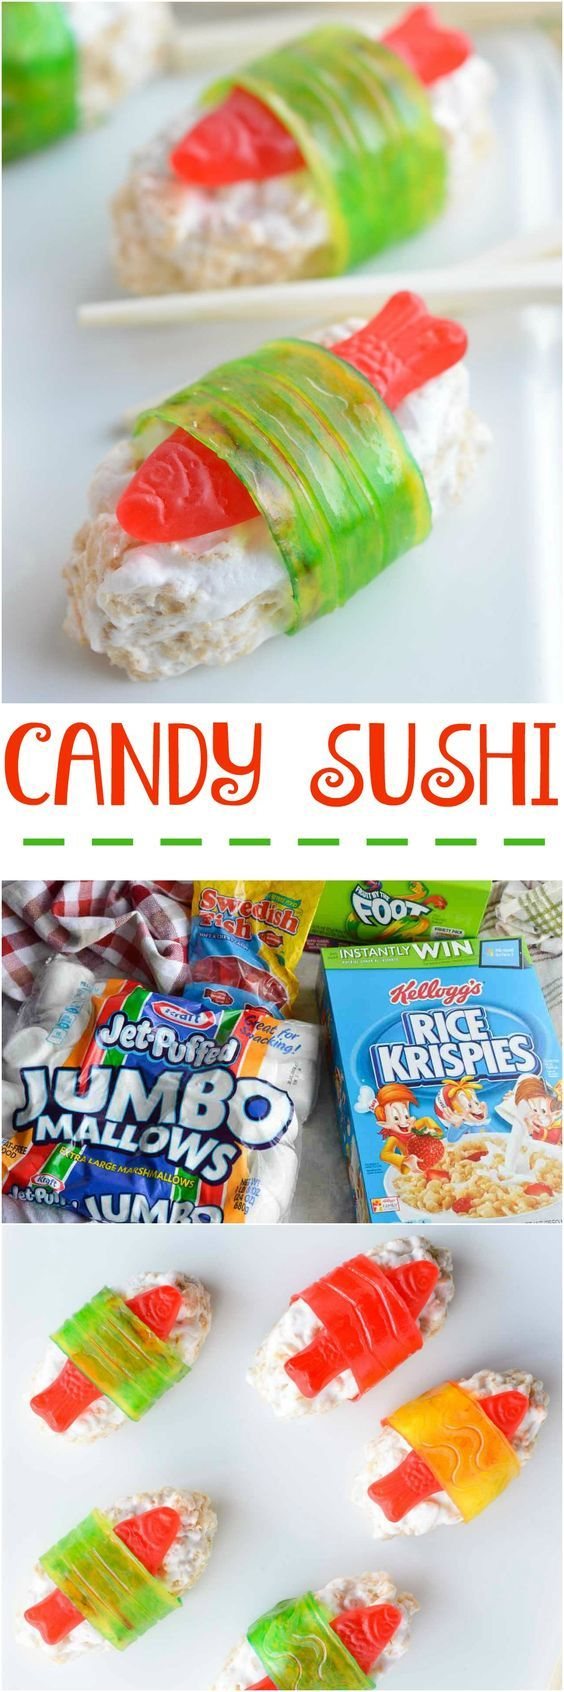 Candy Sushi | 19 Recipes For the Gilmore Girls Fanatic | http://www.hercampus.com/health/food/19-recipes-gilmore-girls-fanatic